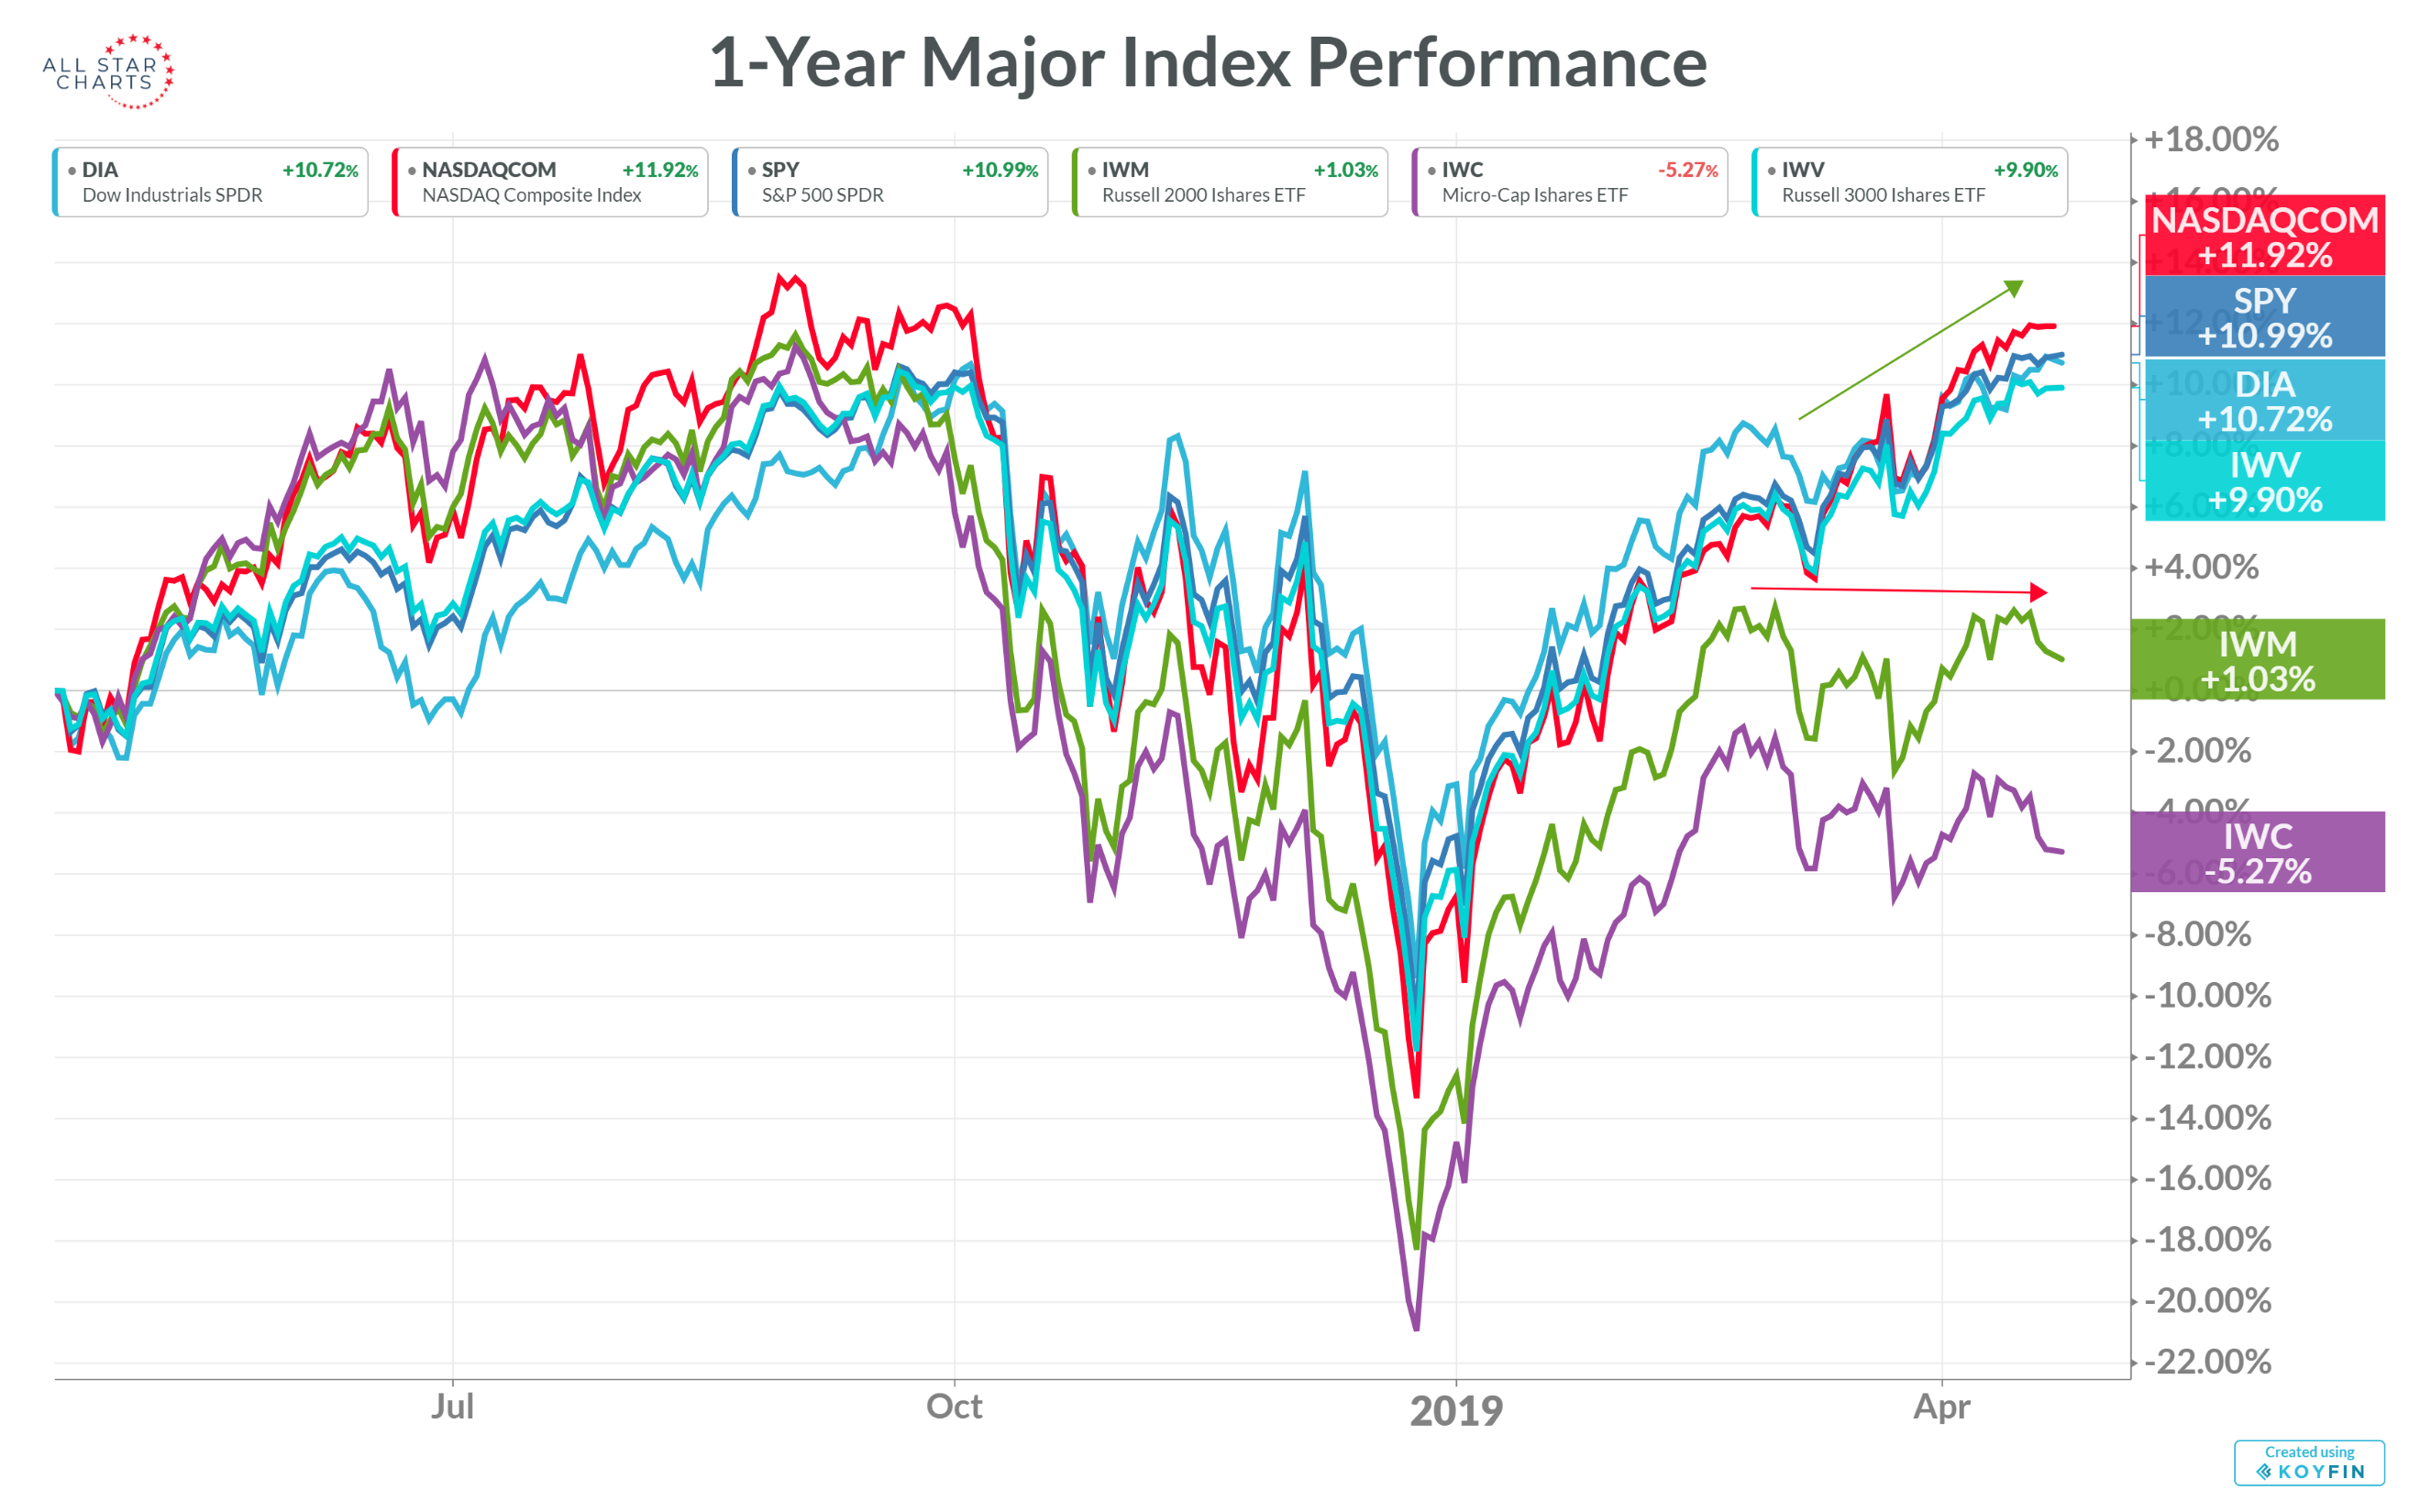 Comparison of U.S. large-, small-, and micro-cap equity market index performance over the last 12 months.